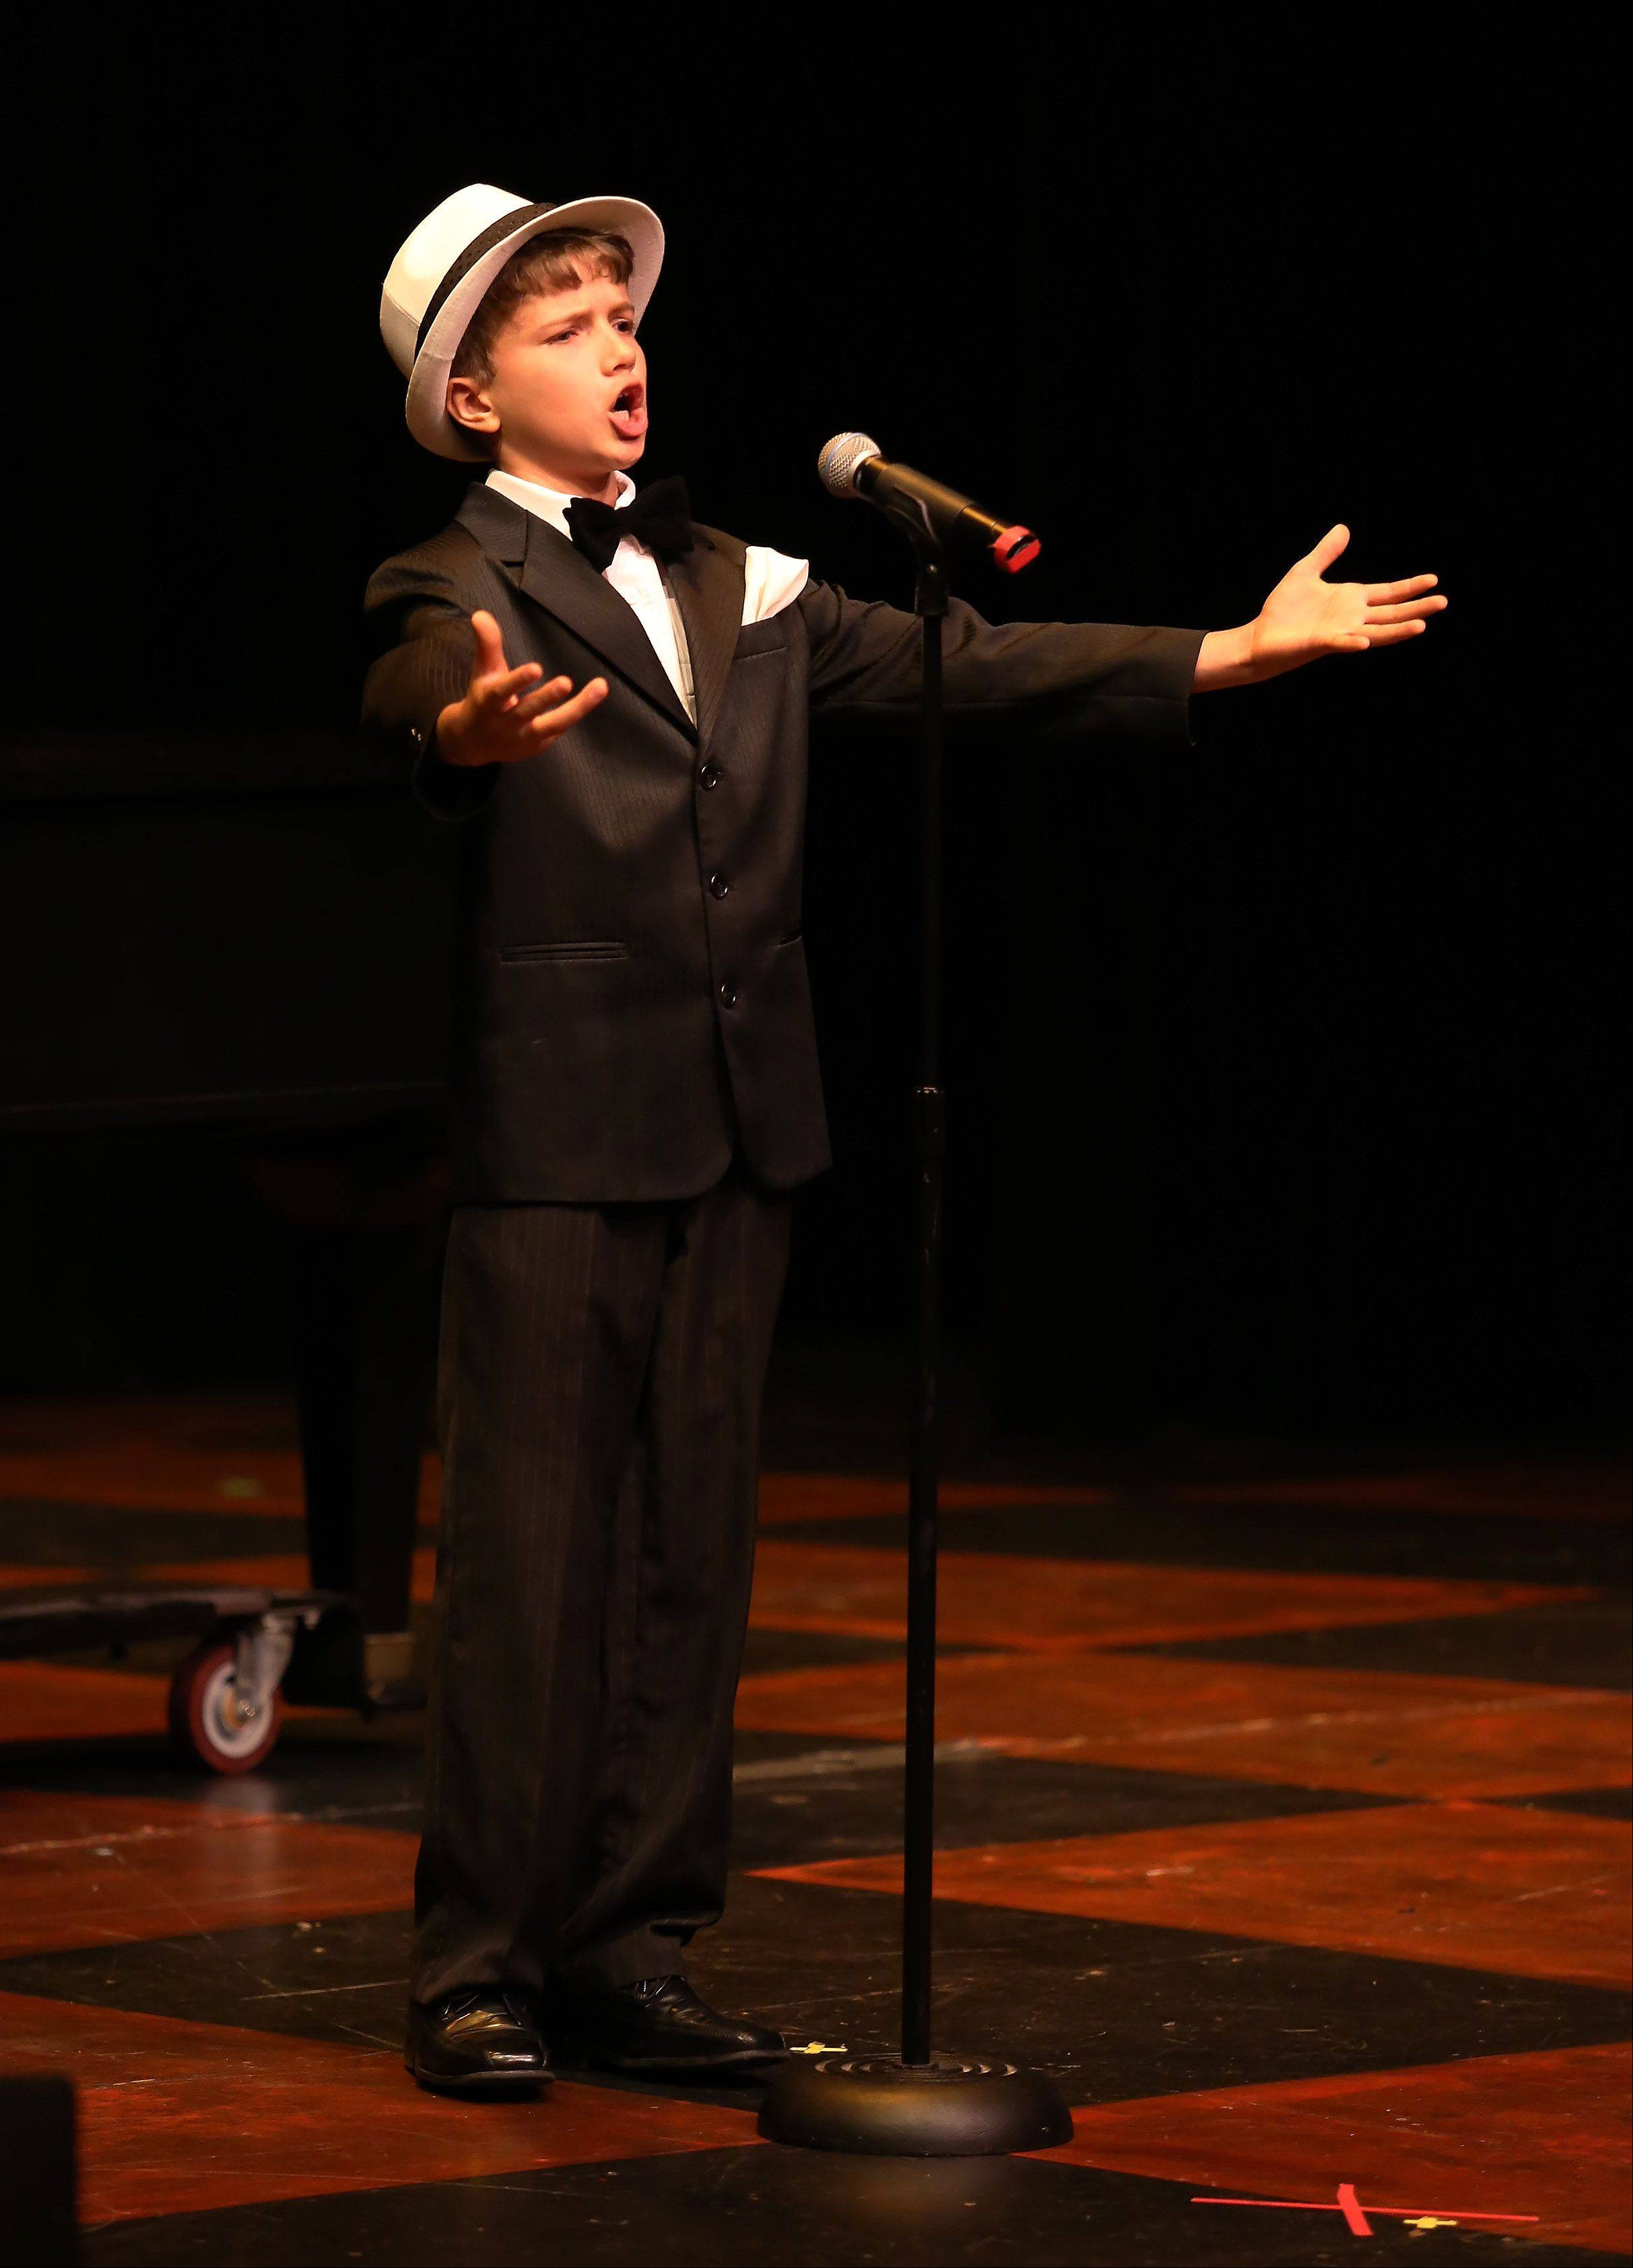 Sheridan Archbold, 11, of Yorkville, performs opera during the first round of finalists for the Suburban Chicago's Got Talent competition Sunday night at the Metropolis Performing Arts Centre in Arlington Heights. The summer-long talent contest is presented by the Daily Herald and sponsored by the Arlington Heights Chamber of Commerce.